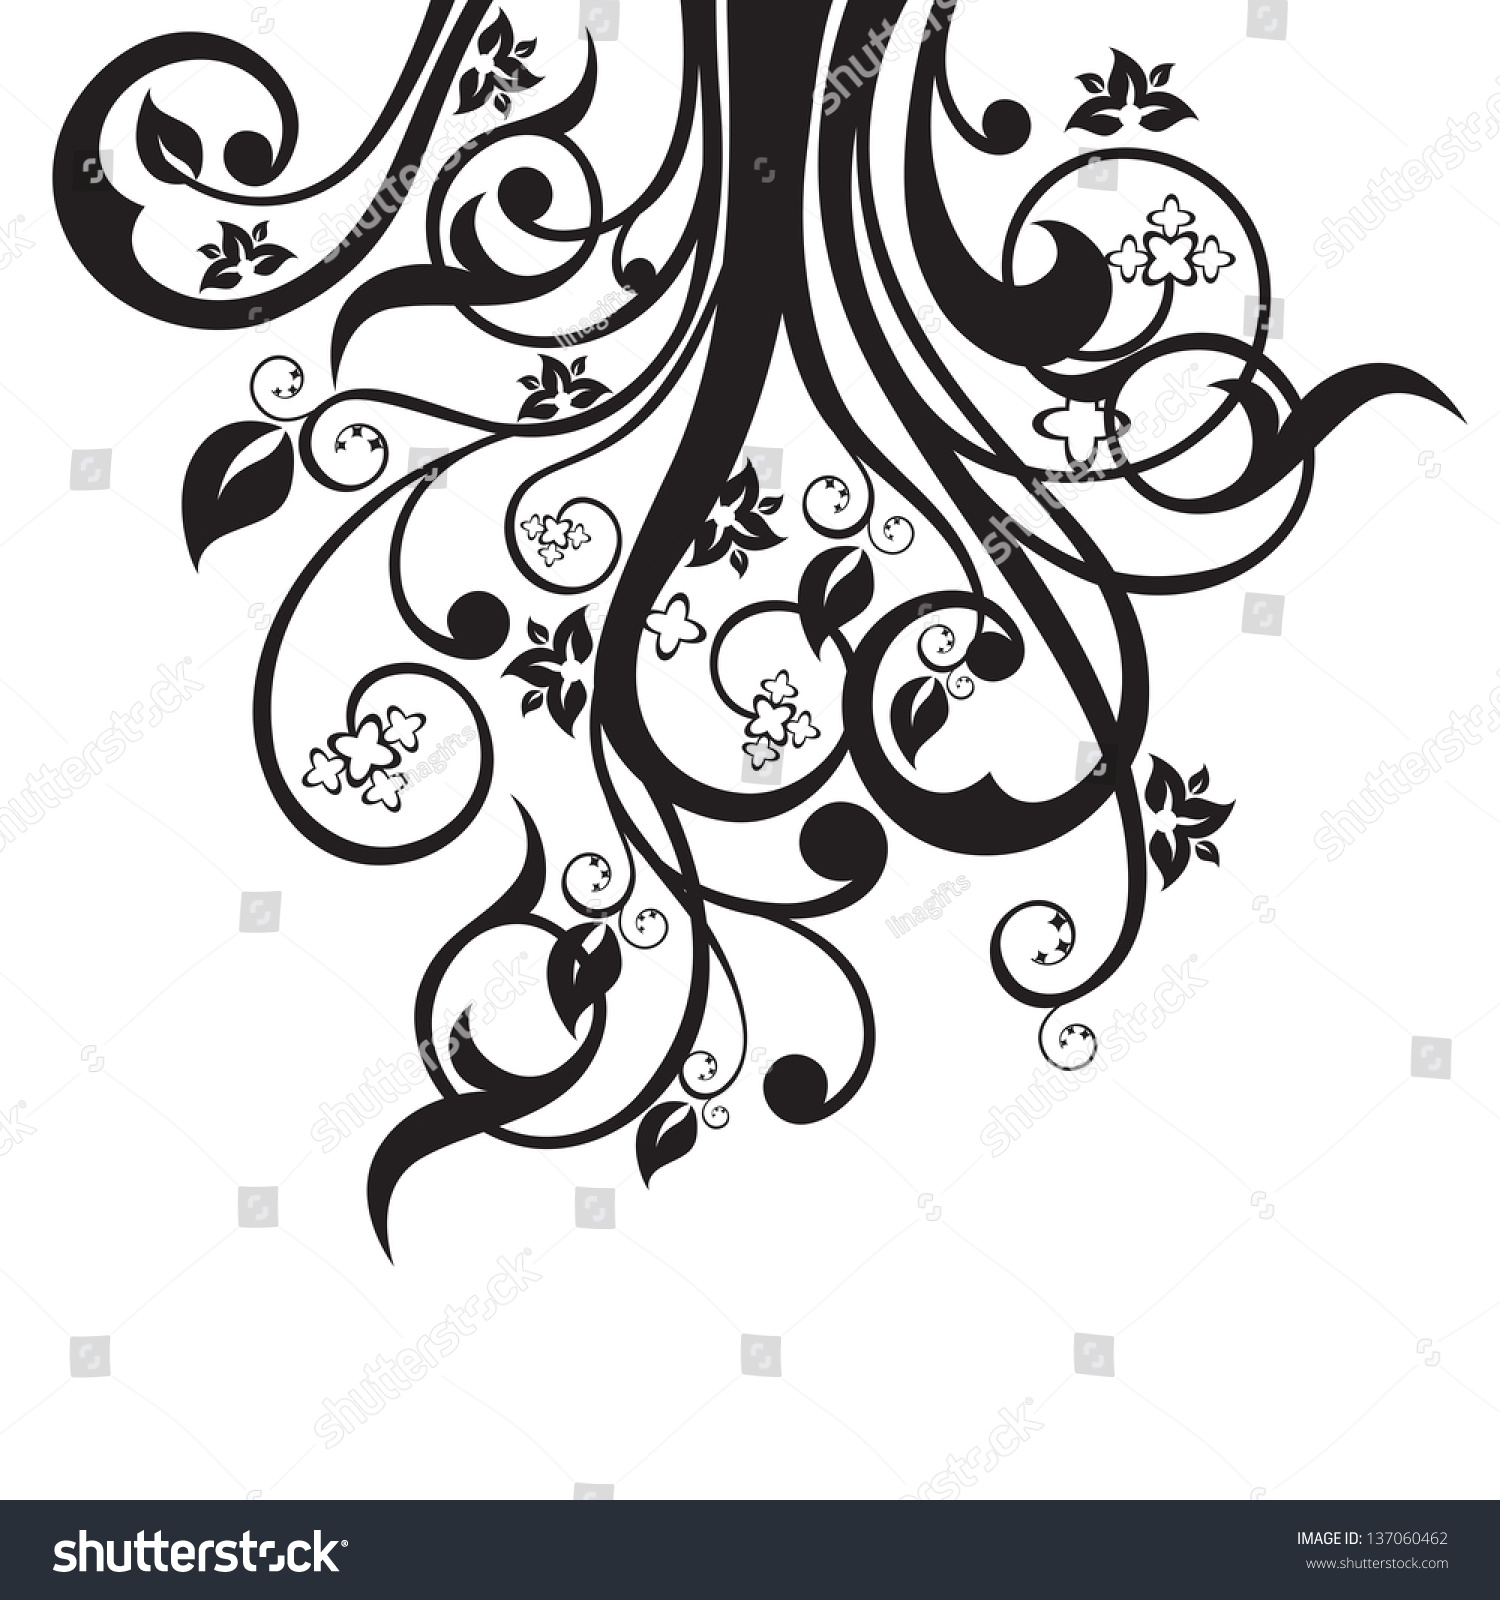 Flowers, Leaves And Swirls Silhouette In Black Isolated On ...